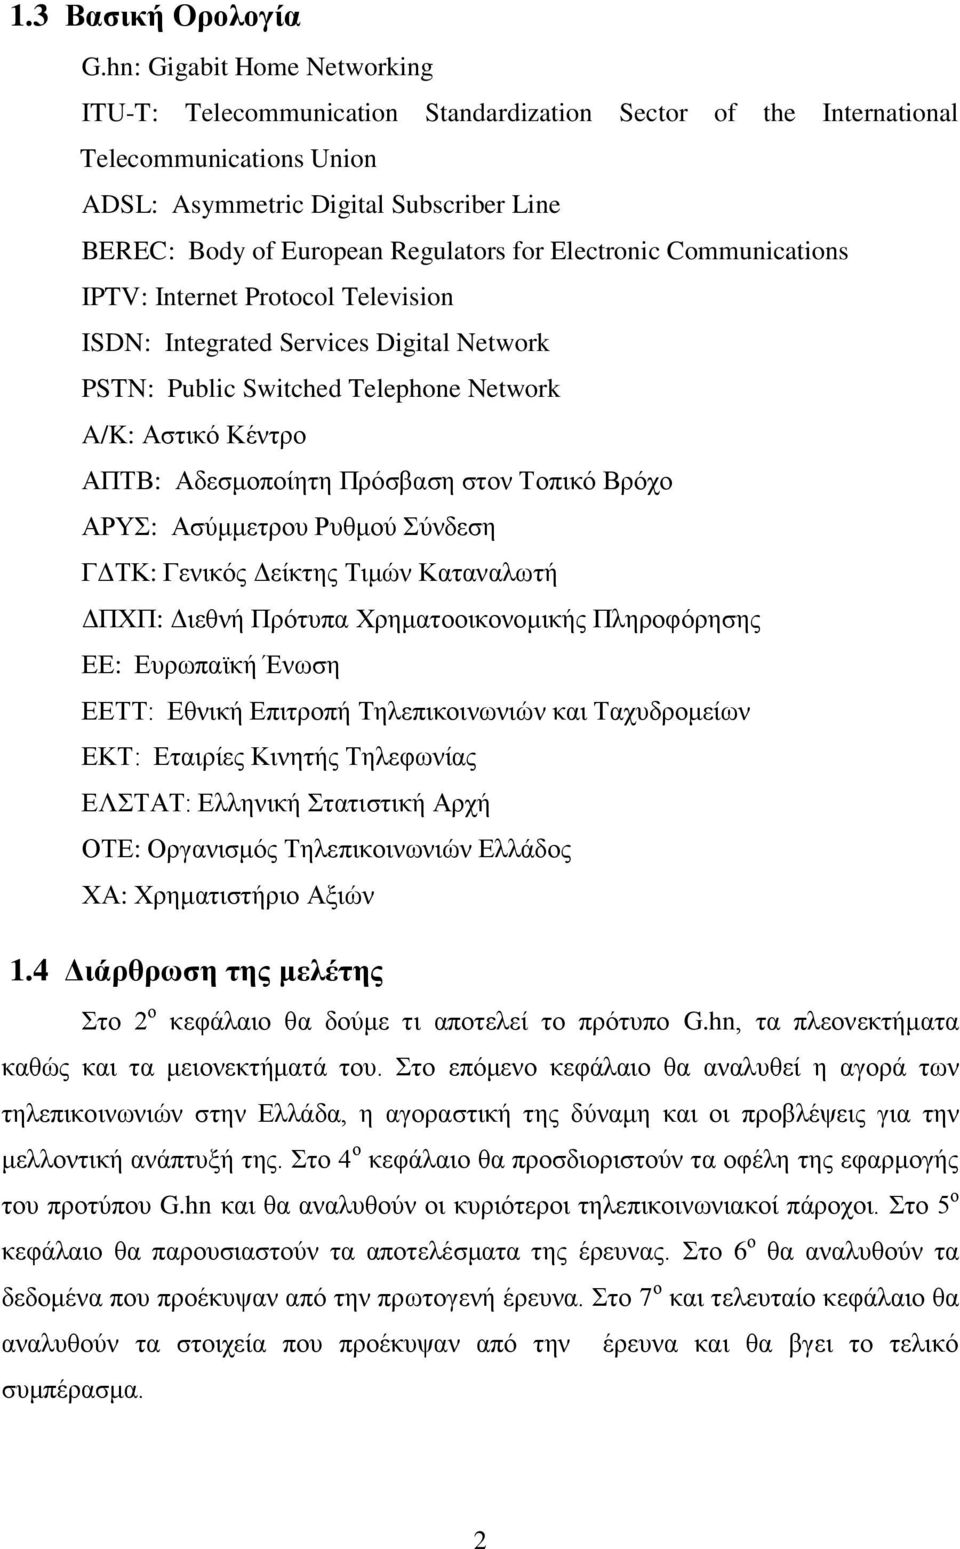 for Electronic Communications IPTV: Internet Protocol Television ISDN: Integrated Services Digital Network PSTN: Public Switched Telephone Network A/K: Αζηηθό Κέληξν ΑΠΣΒ: Αδεζκνπνίεηε Πξόζβαζε ζηνλ